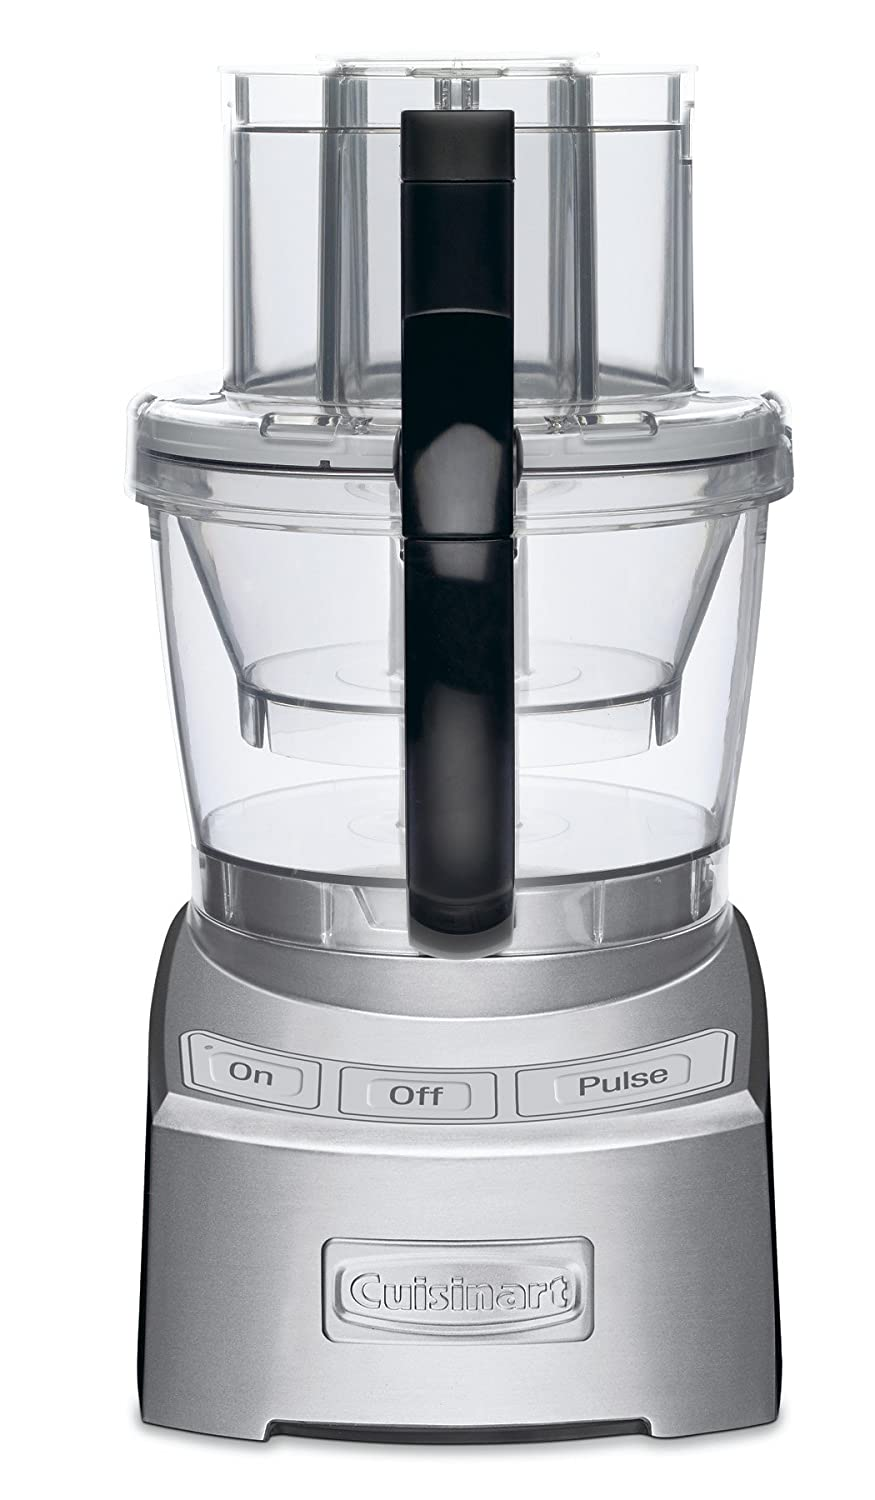 amazon com cuisinart fp 12dc elite collection 12 cup food amazon com cuisinart fp 12dc elite collection 12 cup food processor die cast discontinued by manufacturer full size food processors kitchen dining